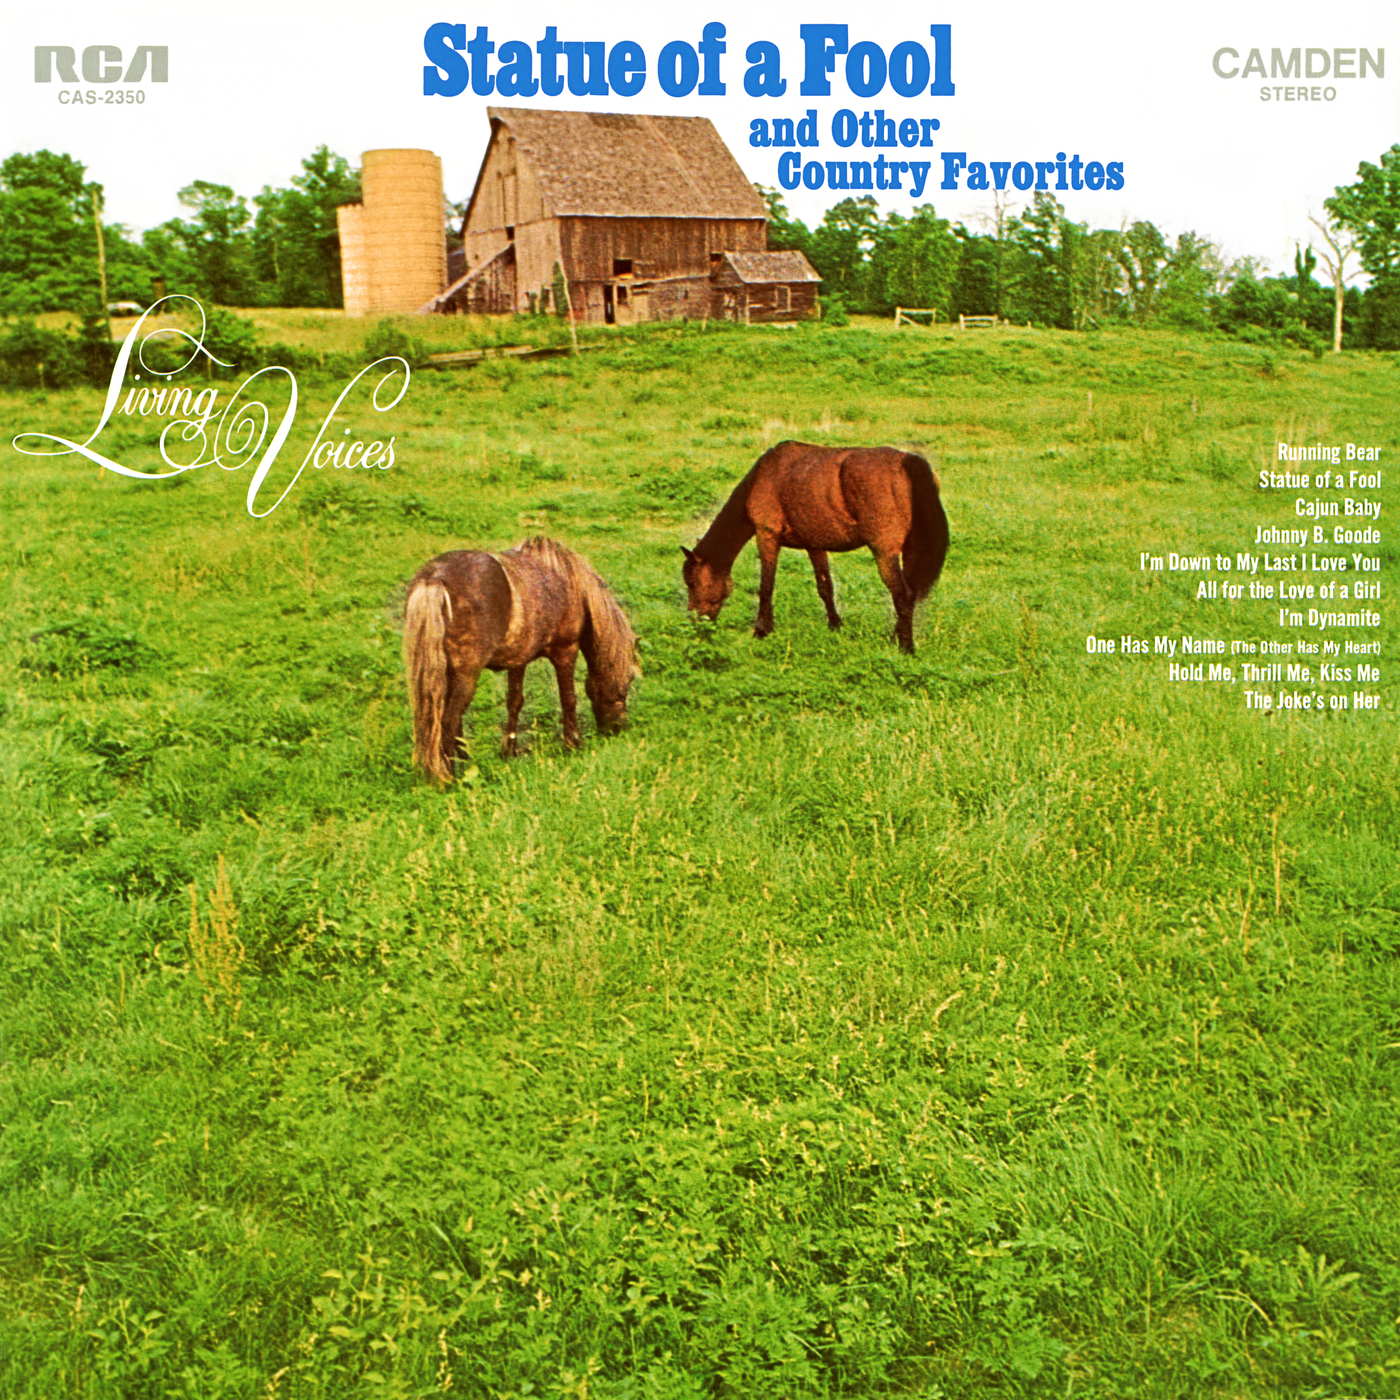 Statue of a Fool and Other Country Favorites - Living Voices